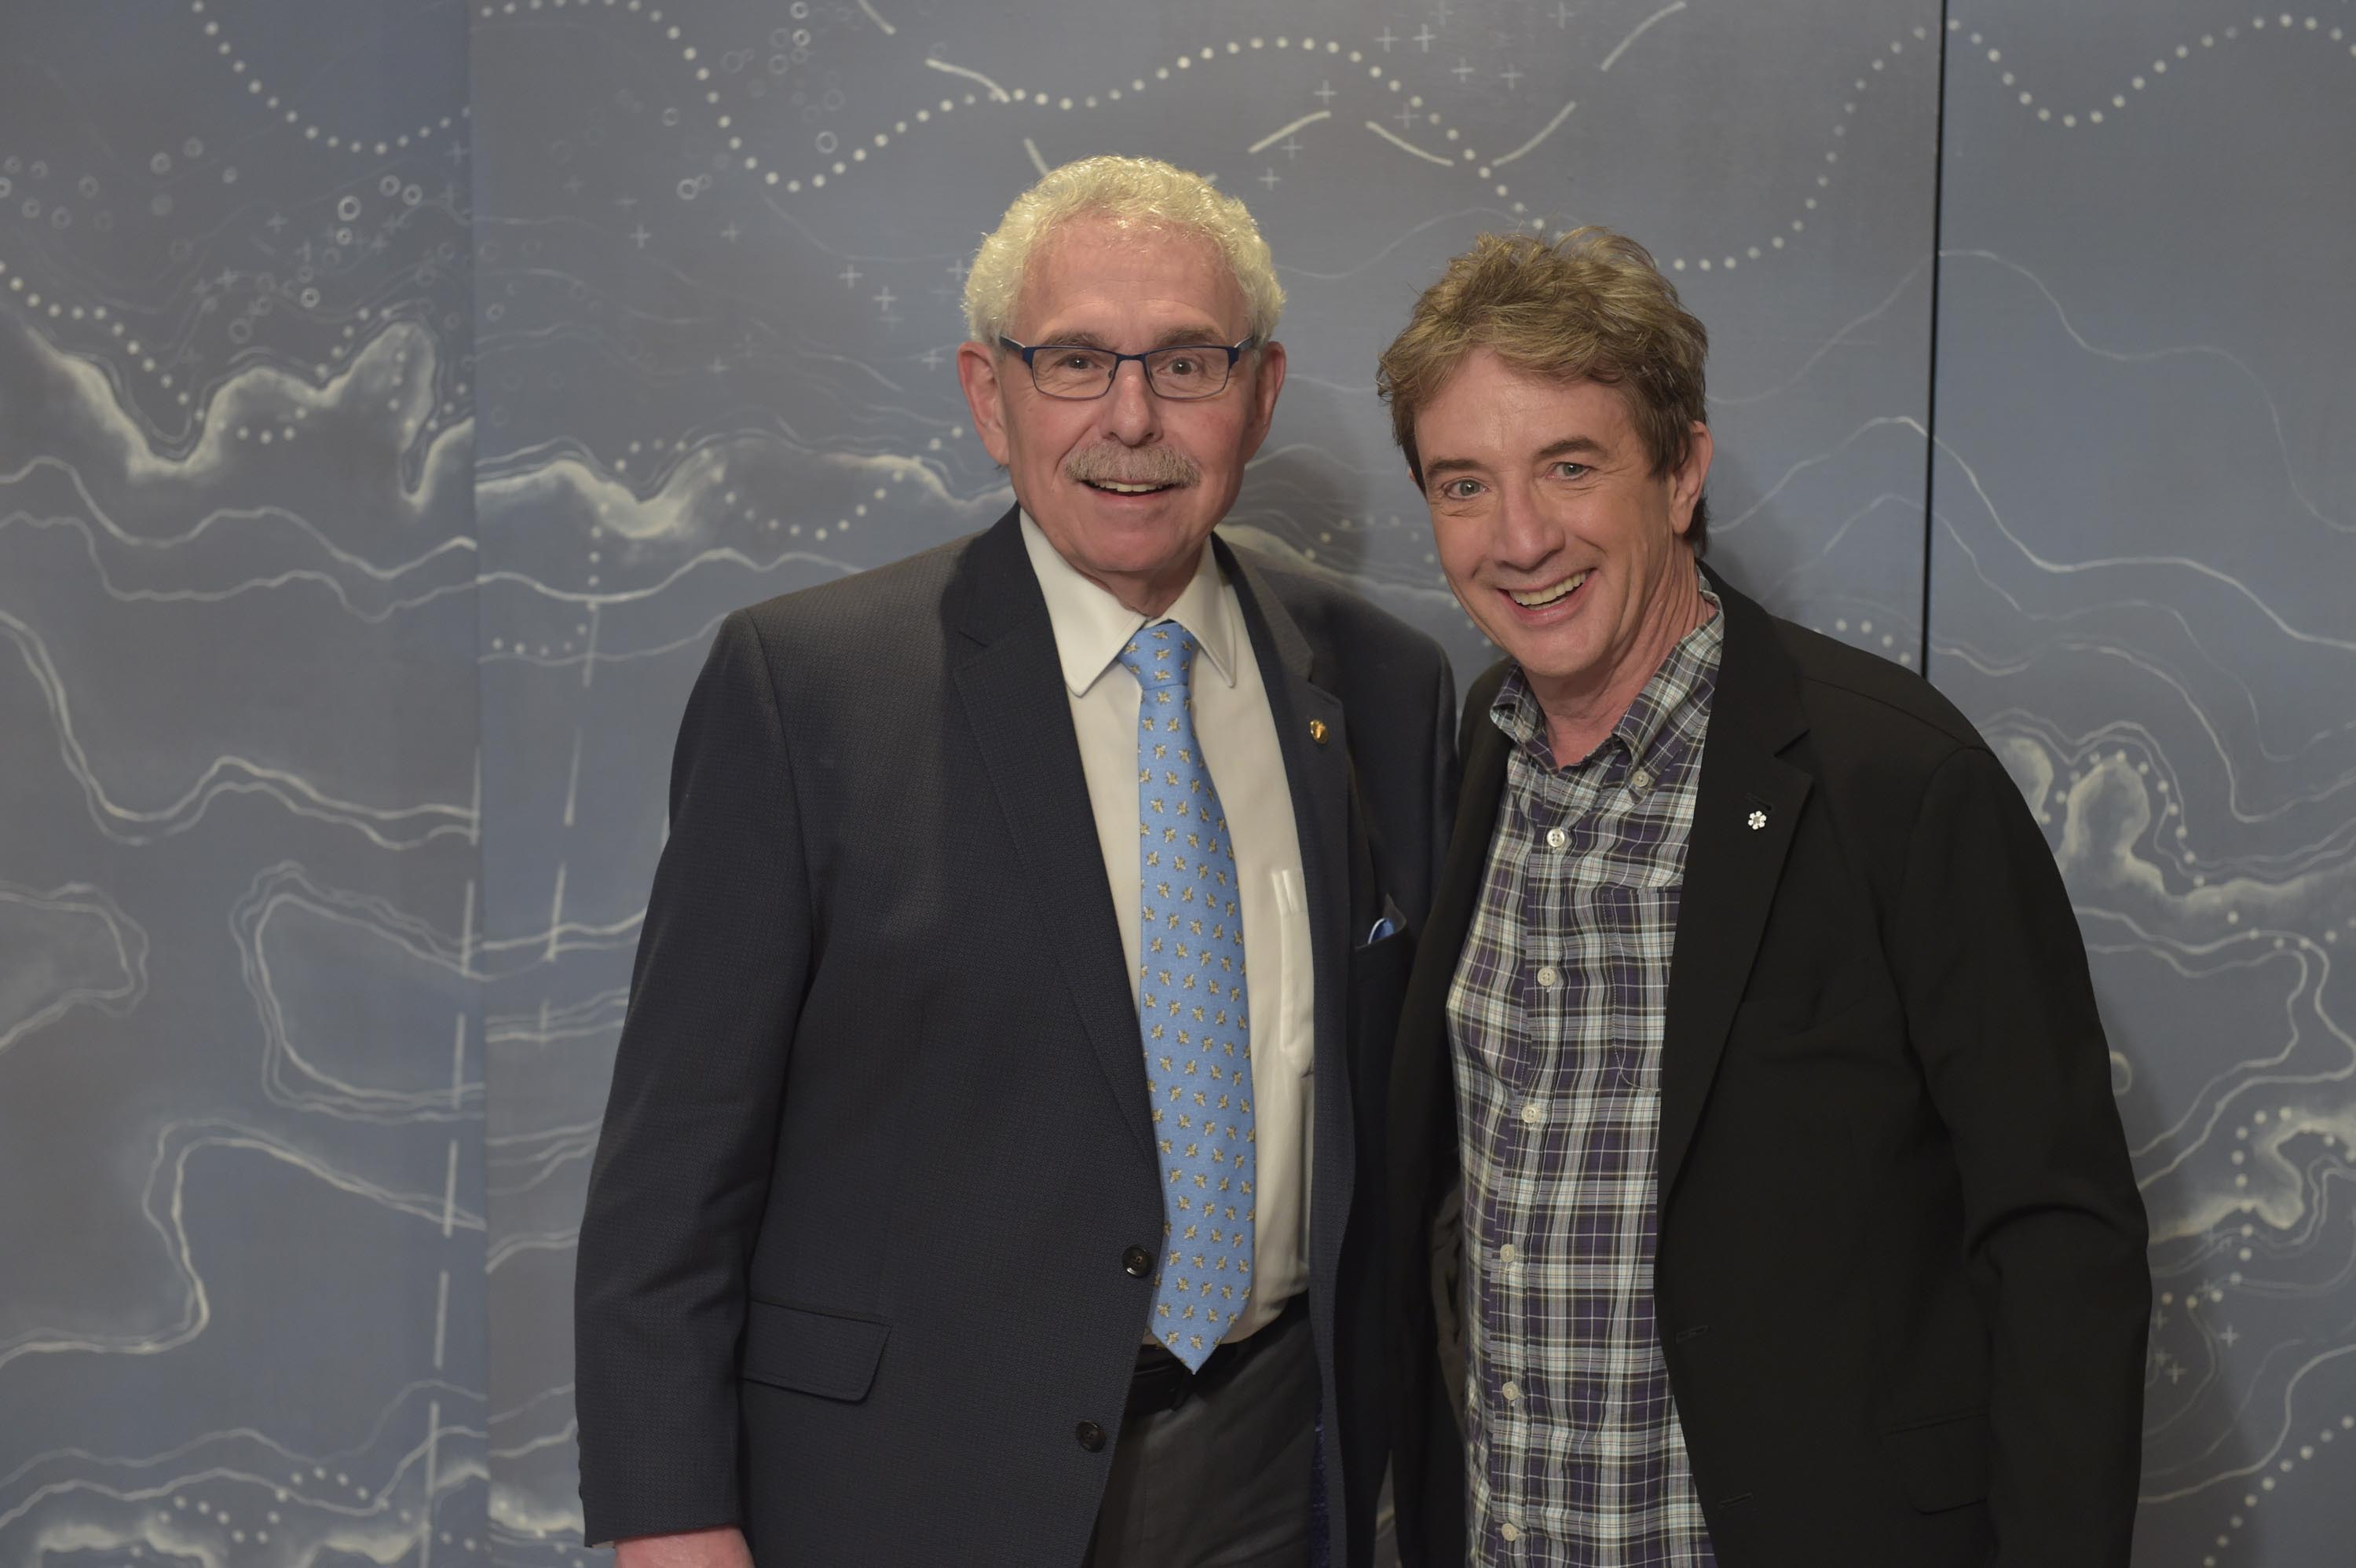 Dr. Bernie Gosevitz and Martin Short